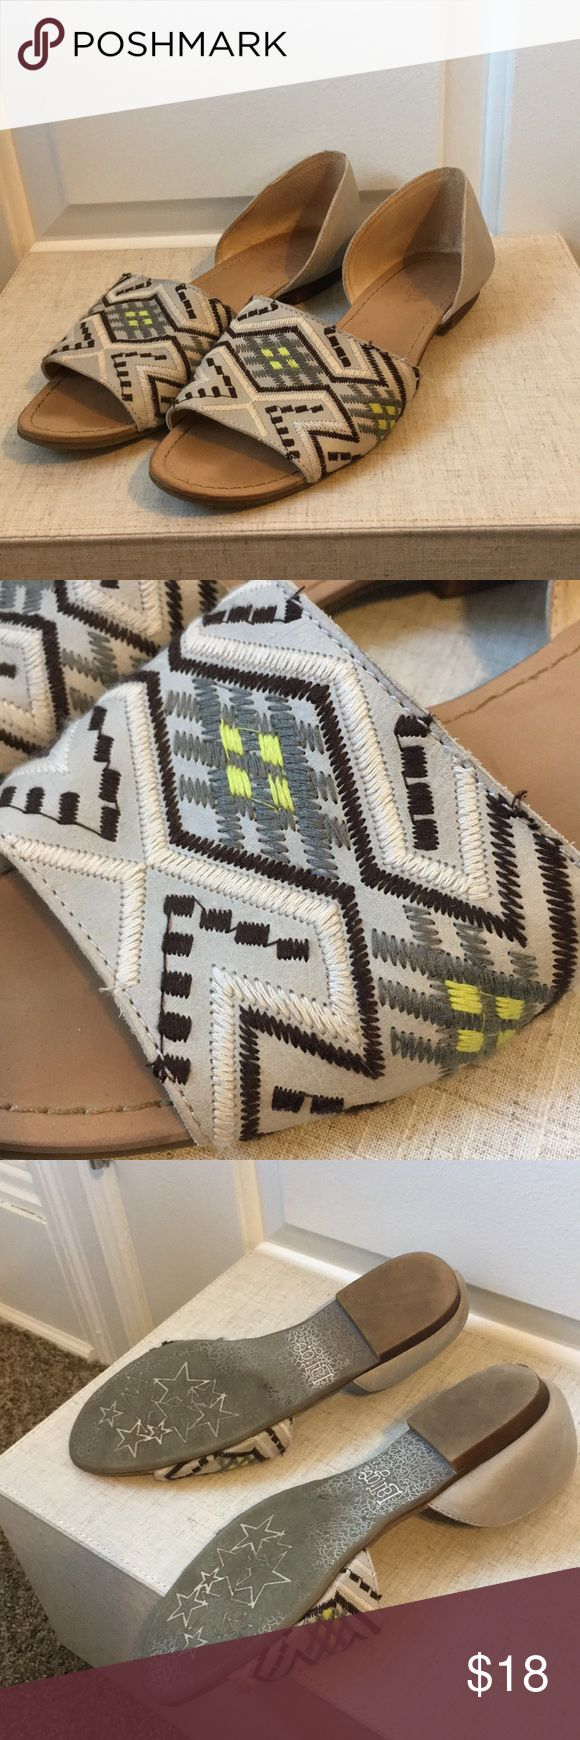 Anthropologie grey embroidered open toe flat Super comfy everyday flats Anthropologie Shoes Flats & Loafers